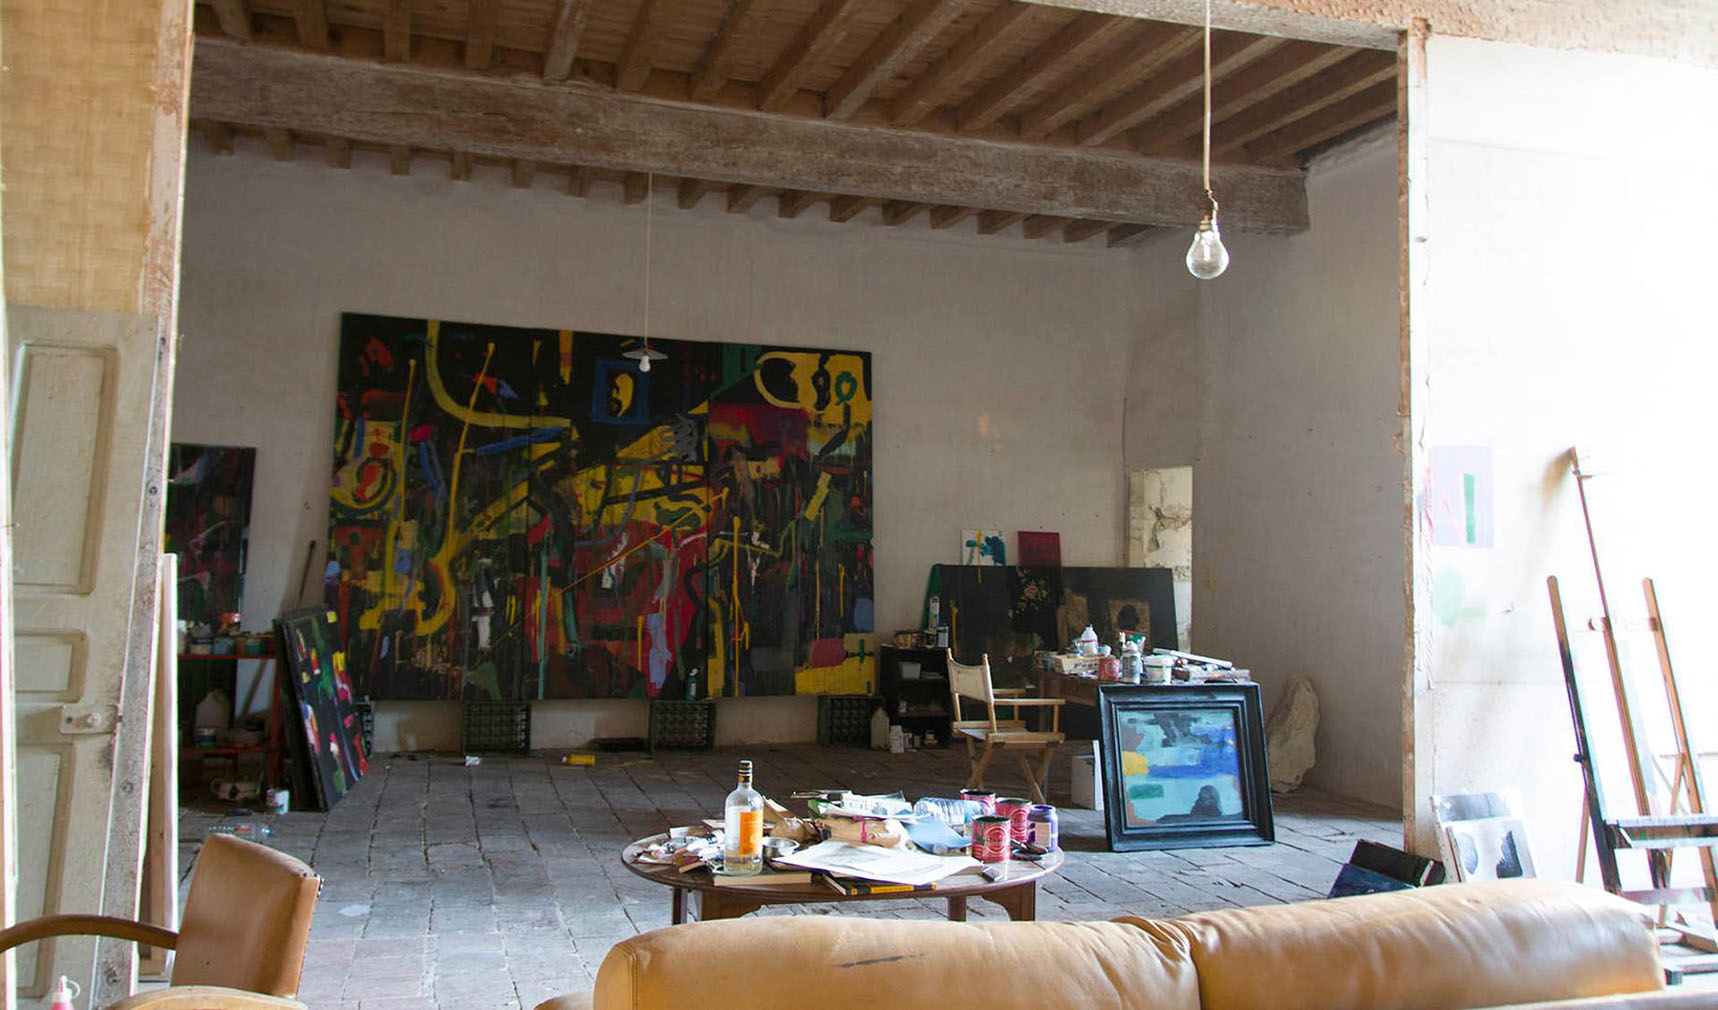 Renovation challenge: a Bishop's sprawling palace in the south of France